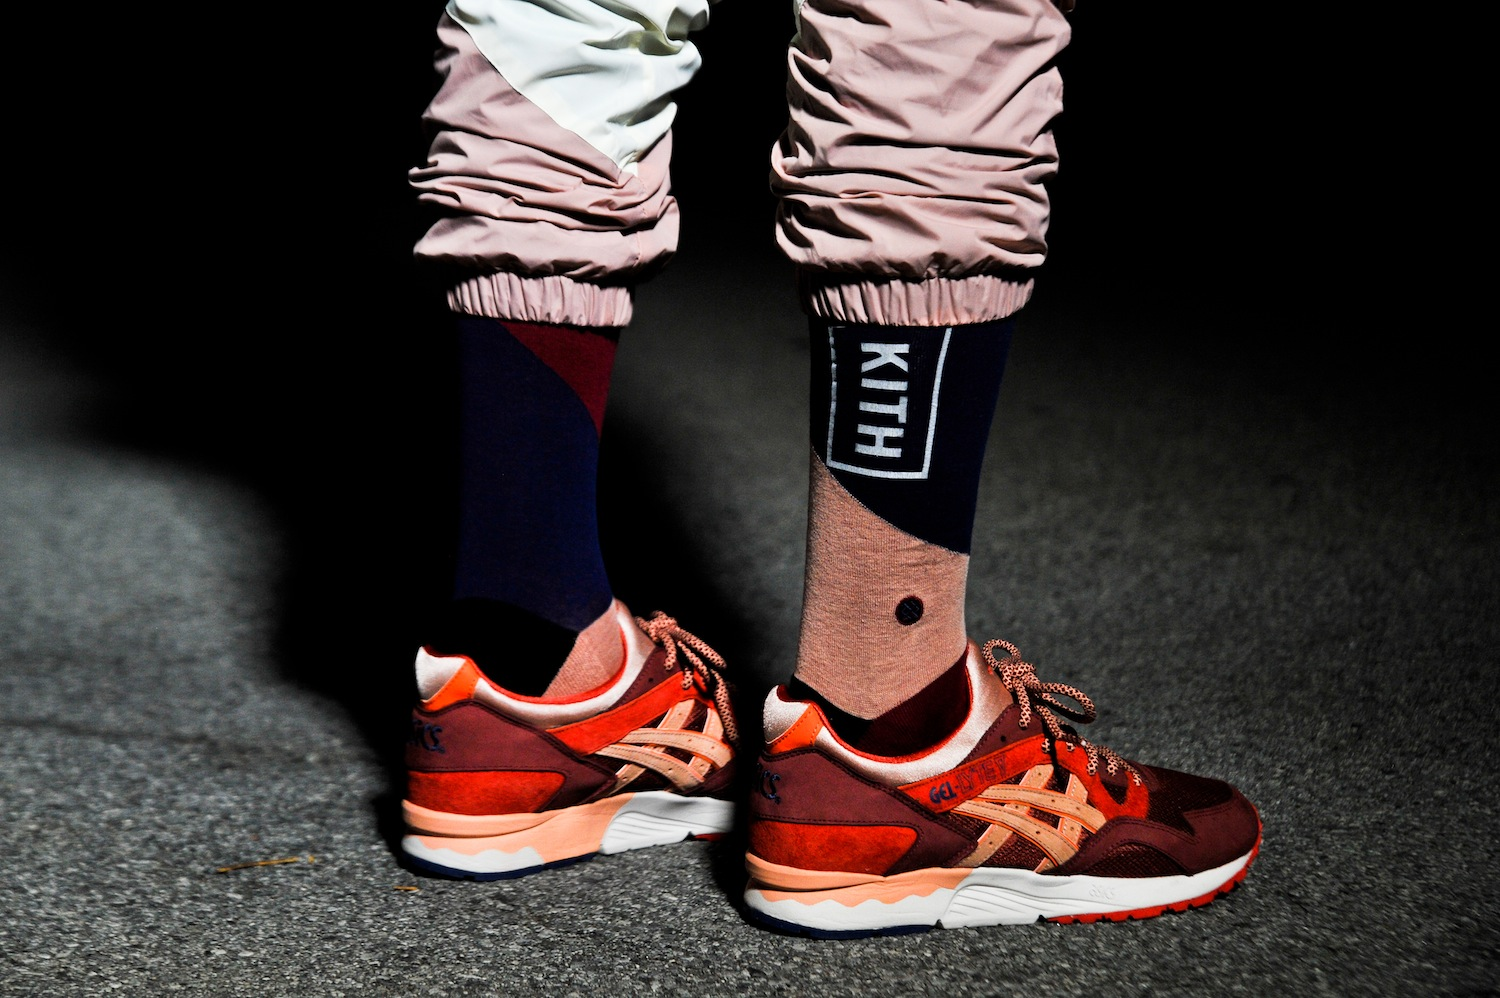 Kith Volcano Capsule Collection crew sock